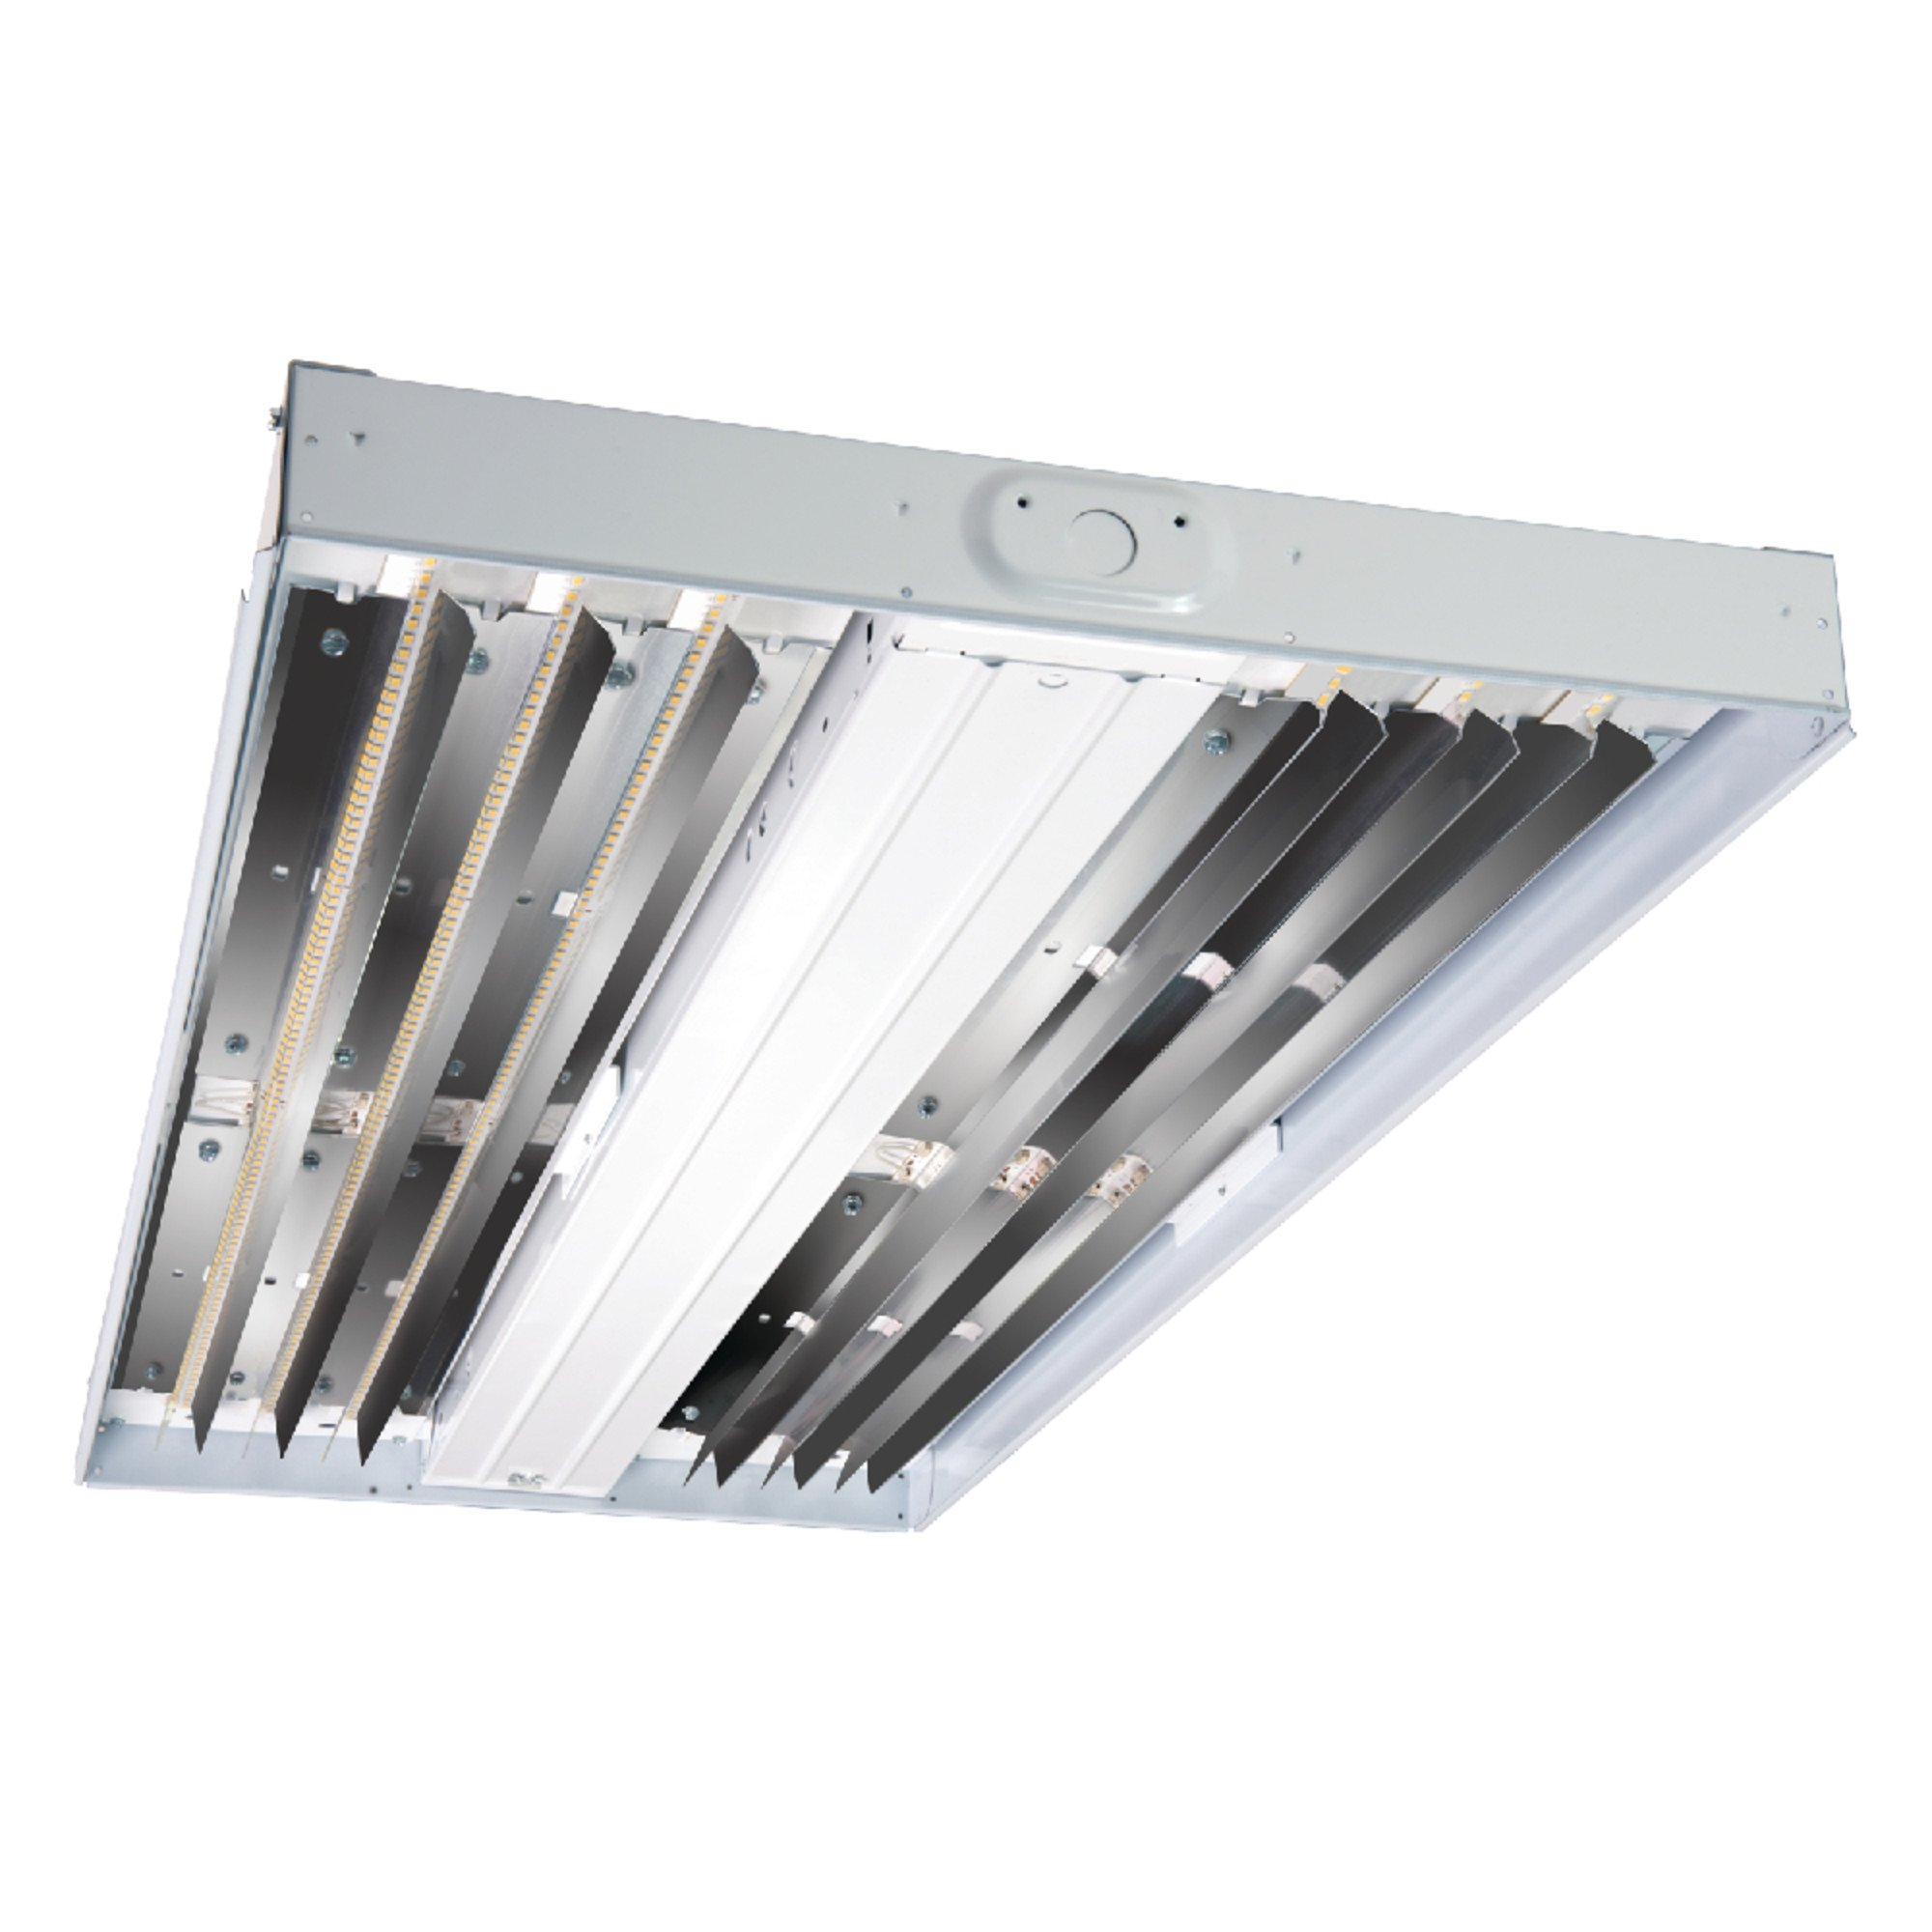 Metalux Hbled-LD5-12SE-W-Unv-L850-ED1-U Hbled 75W Enamel Integrated LED High Bay 5000K Cct with Electronic Fixed Output Driver, White